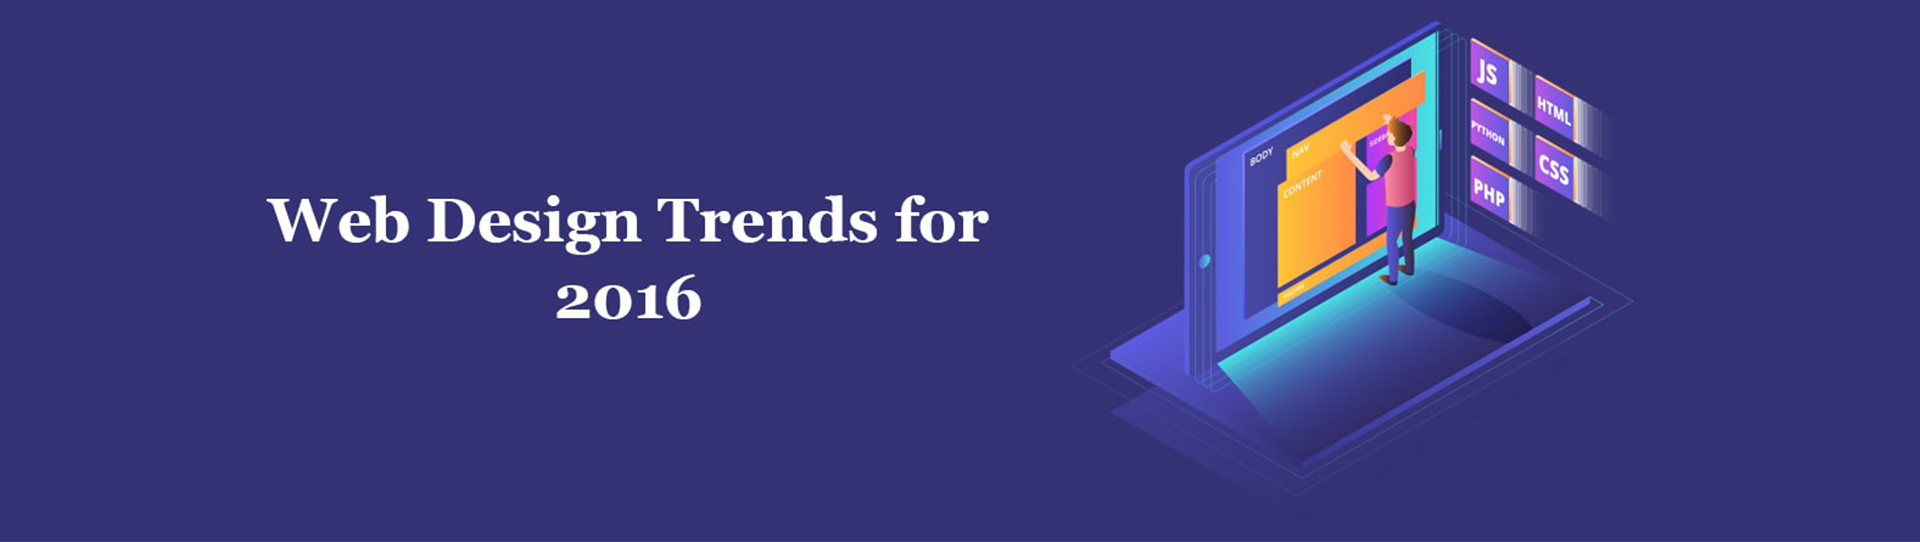 Top 5 Web Design Trends For 2016 Website Trends 2base Technologies